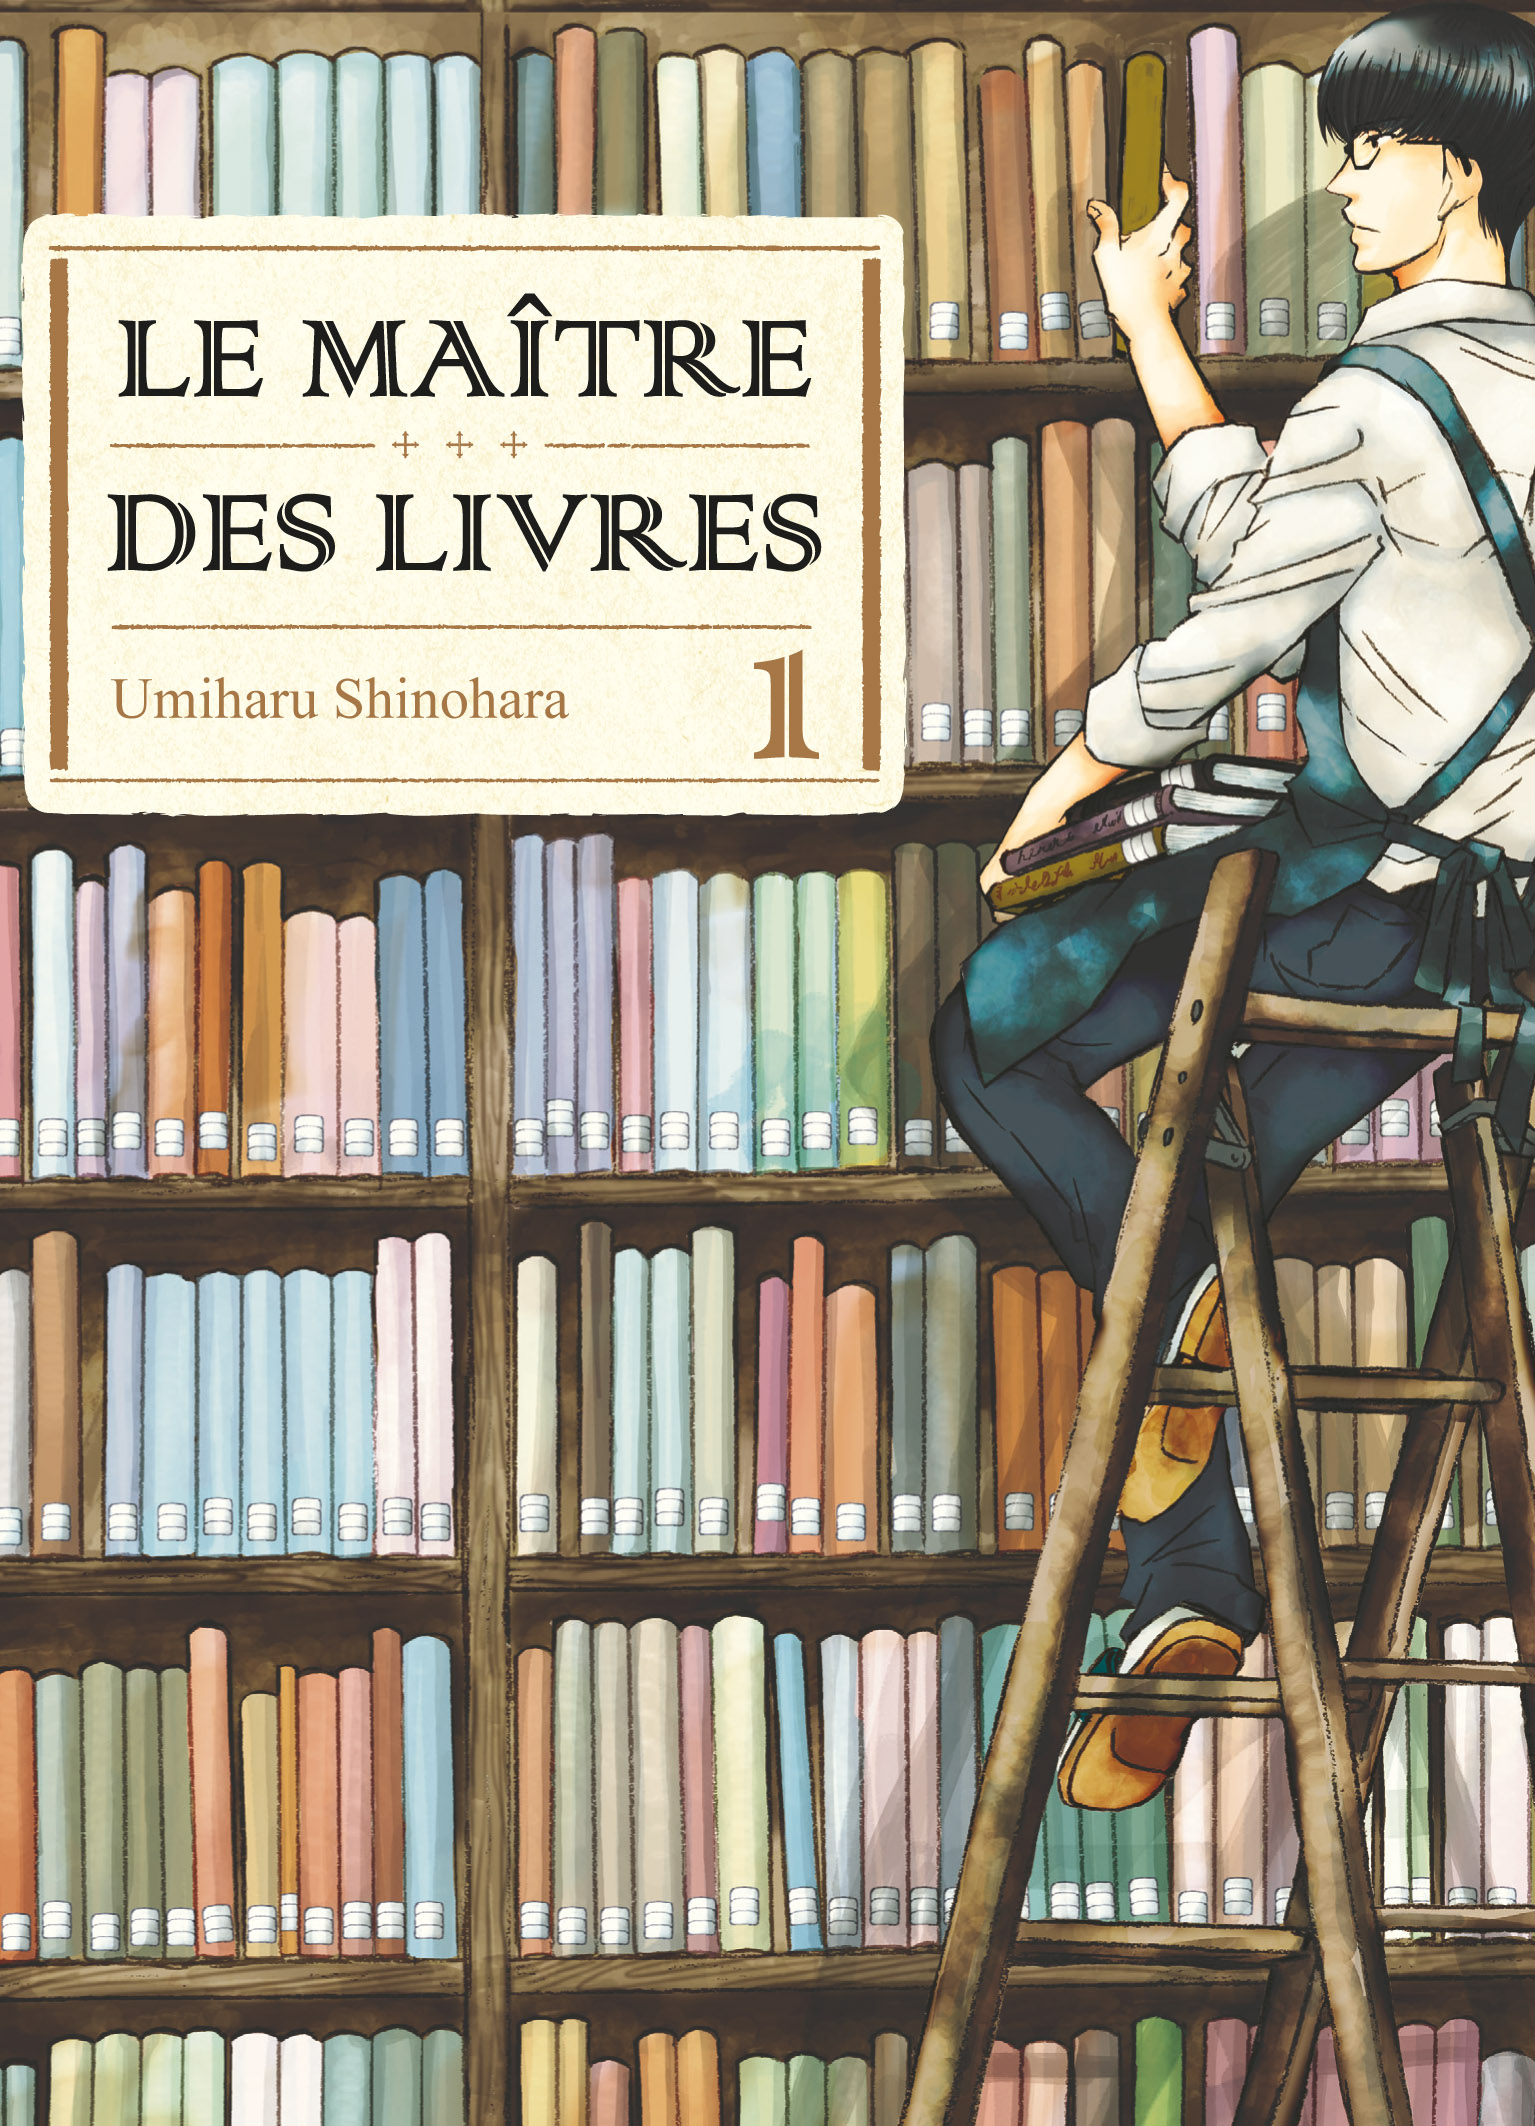 http://img.manga-sanctuary.com/big/le-maitre-des-livres-manga-volume-1-simple-212891.jpg